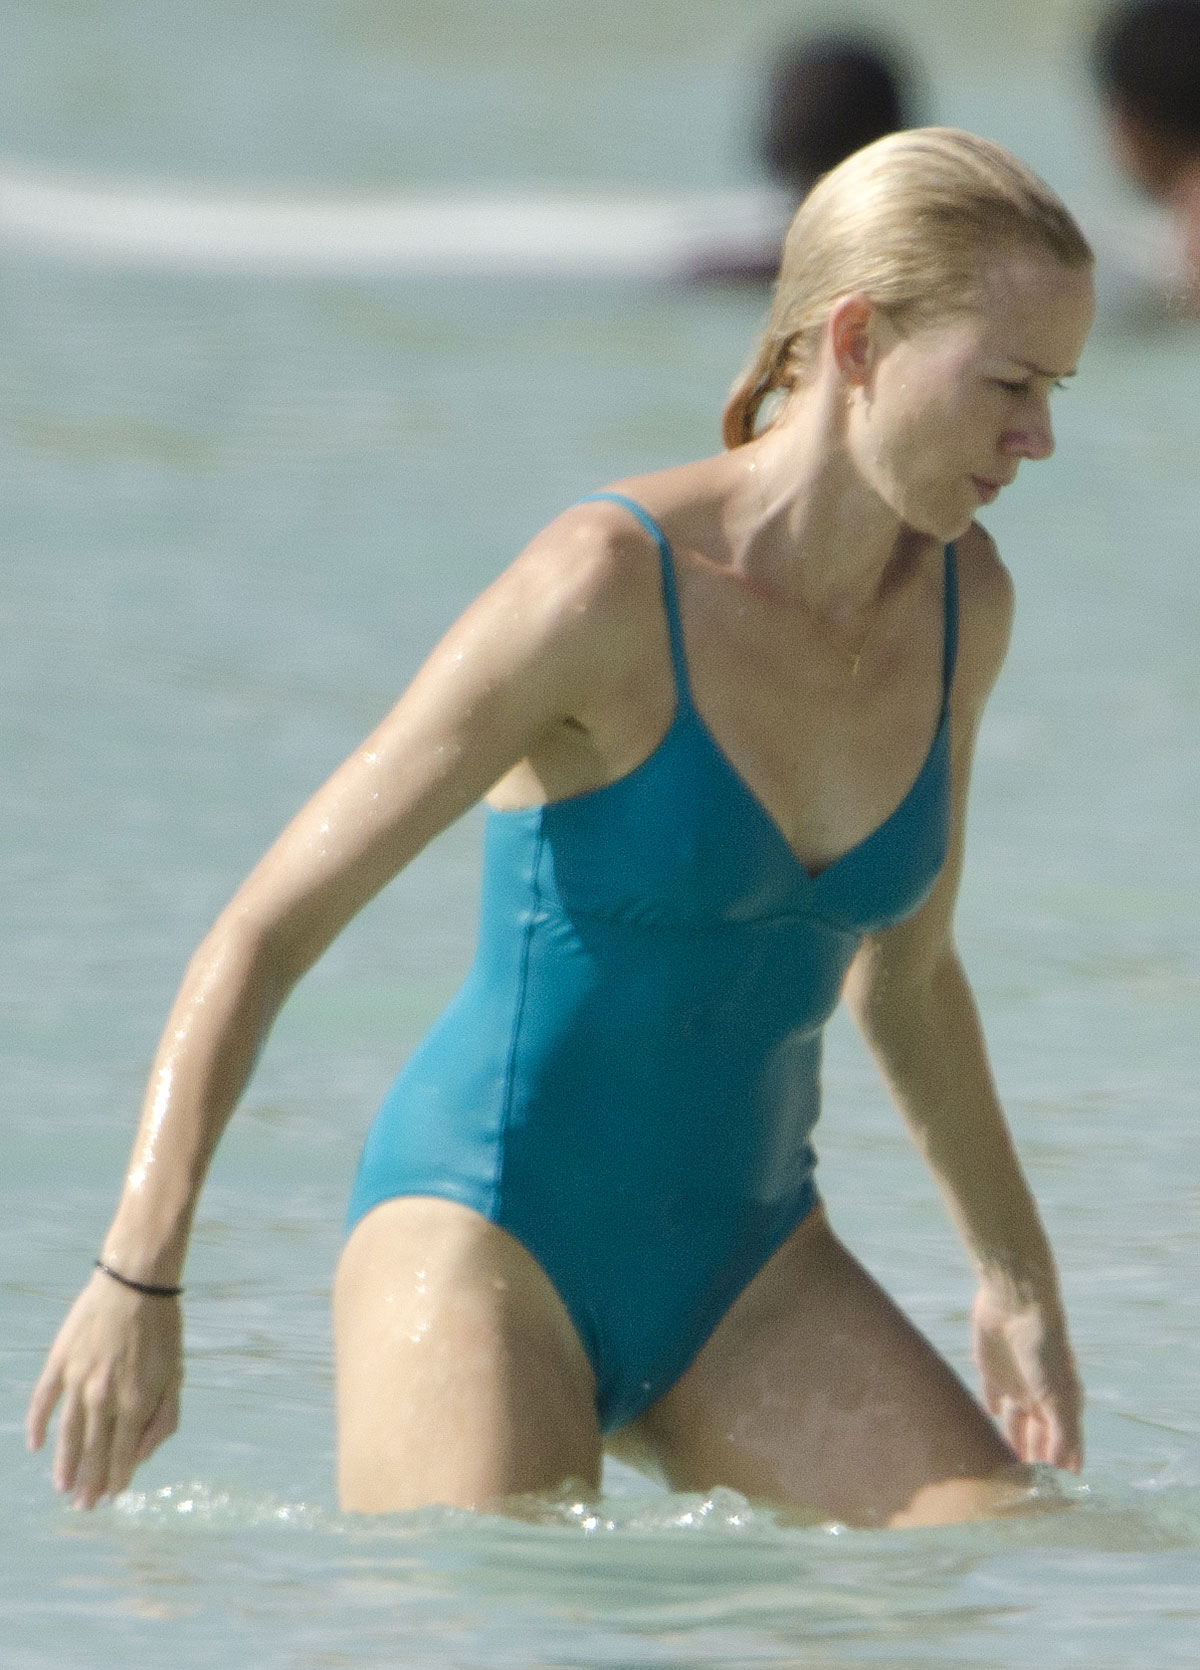 She just naomi watts bikini favorite video all